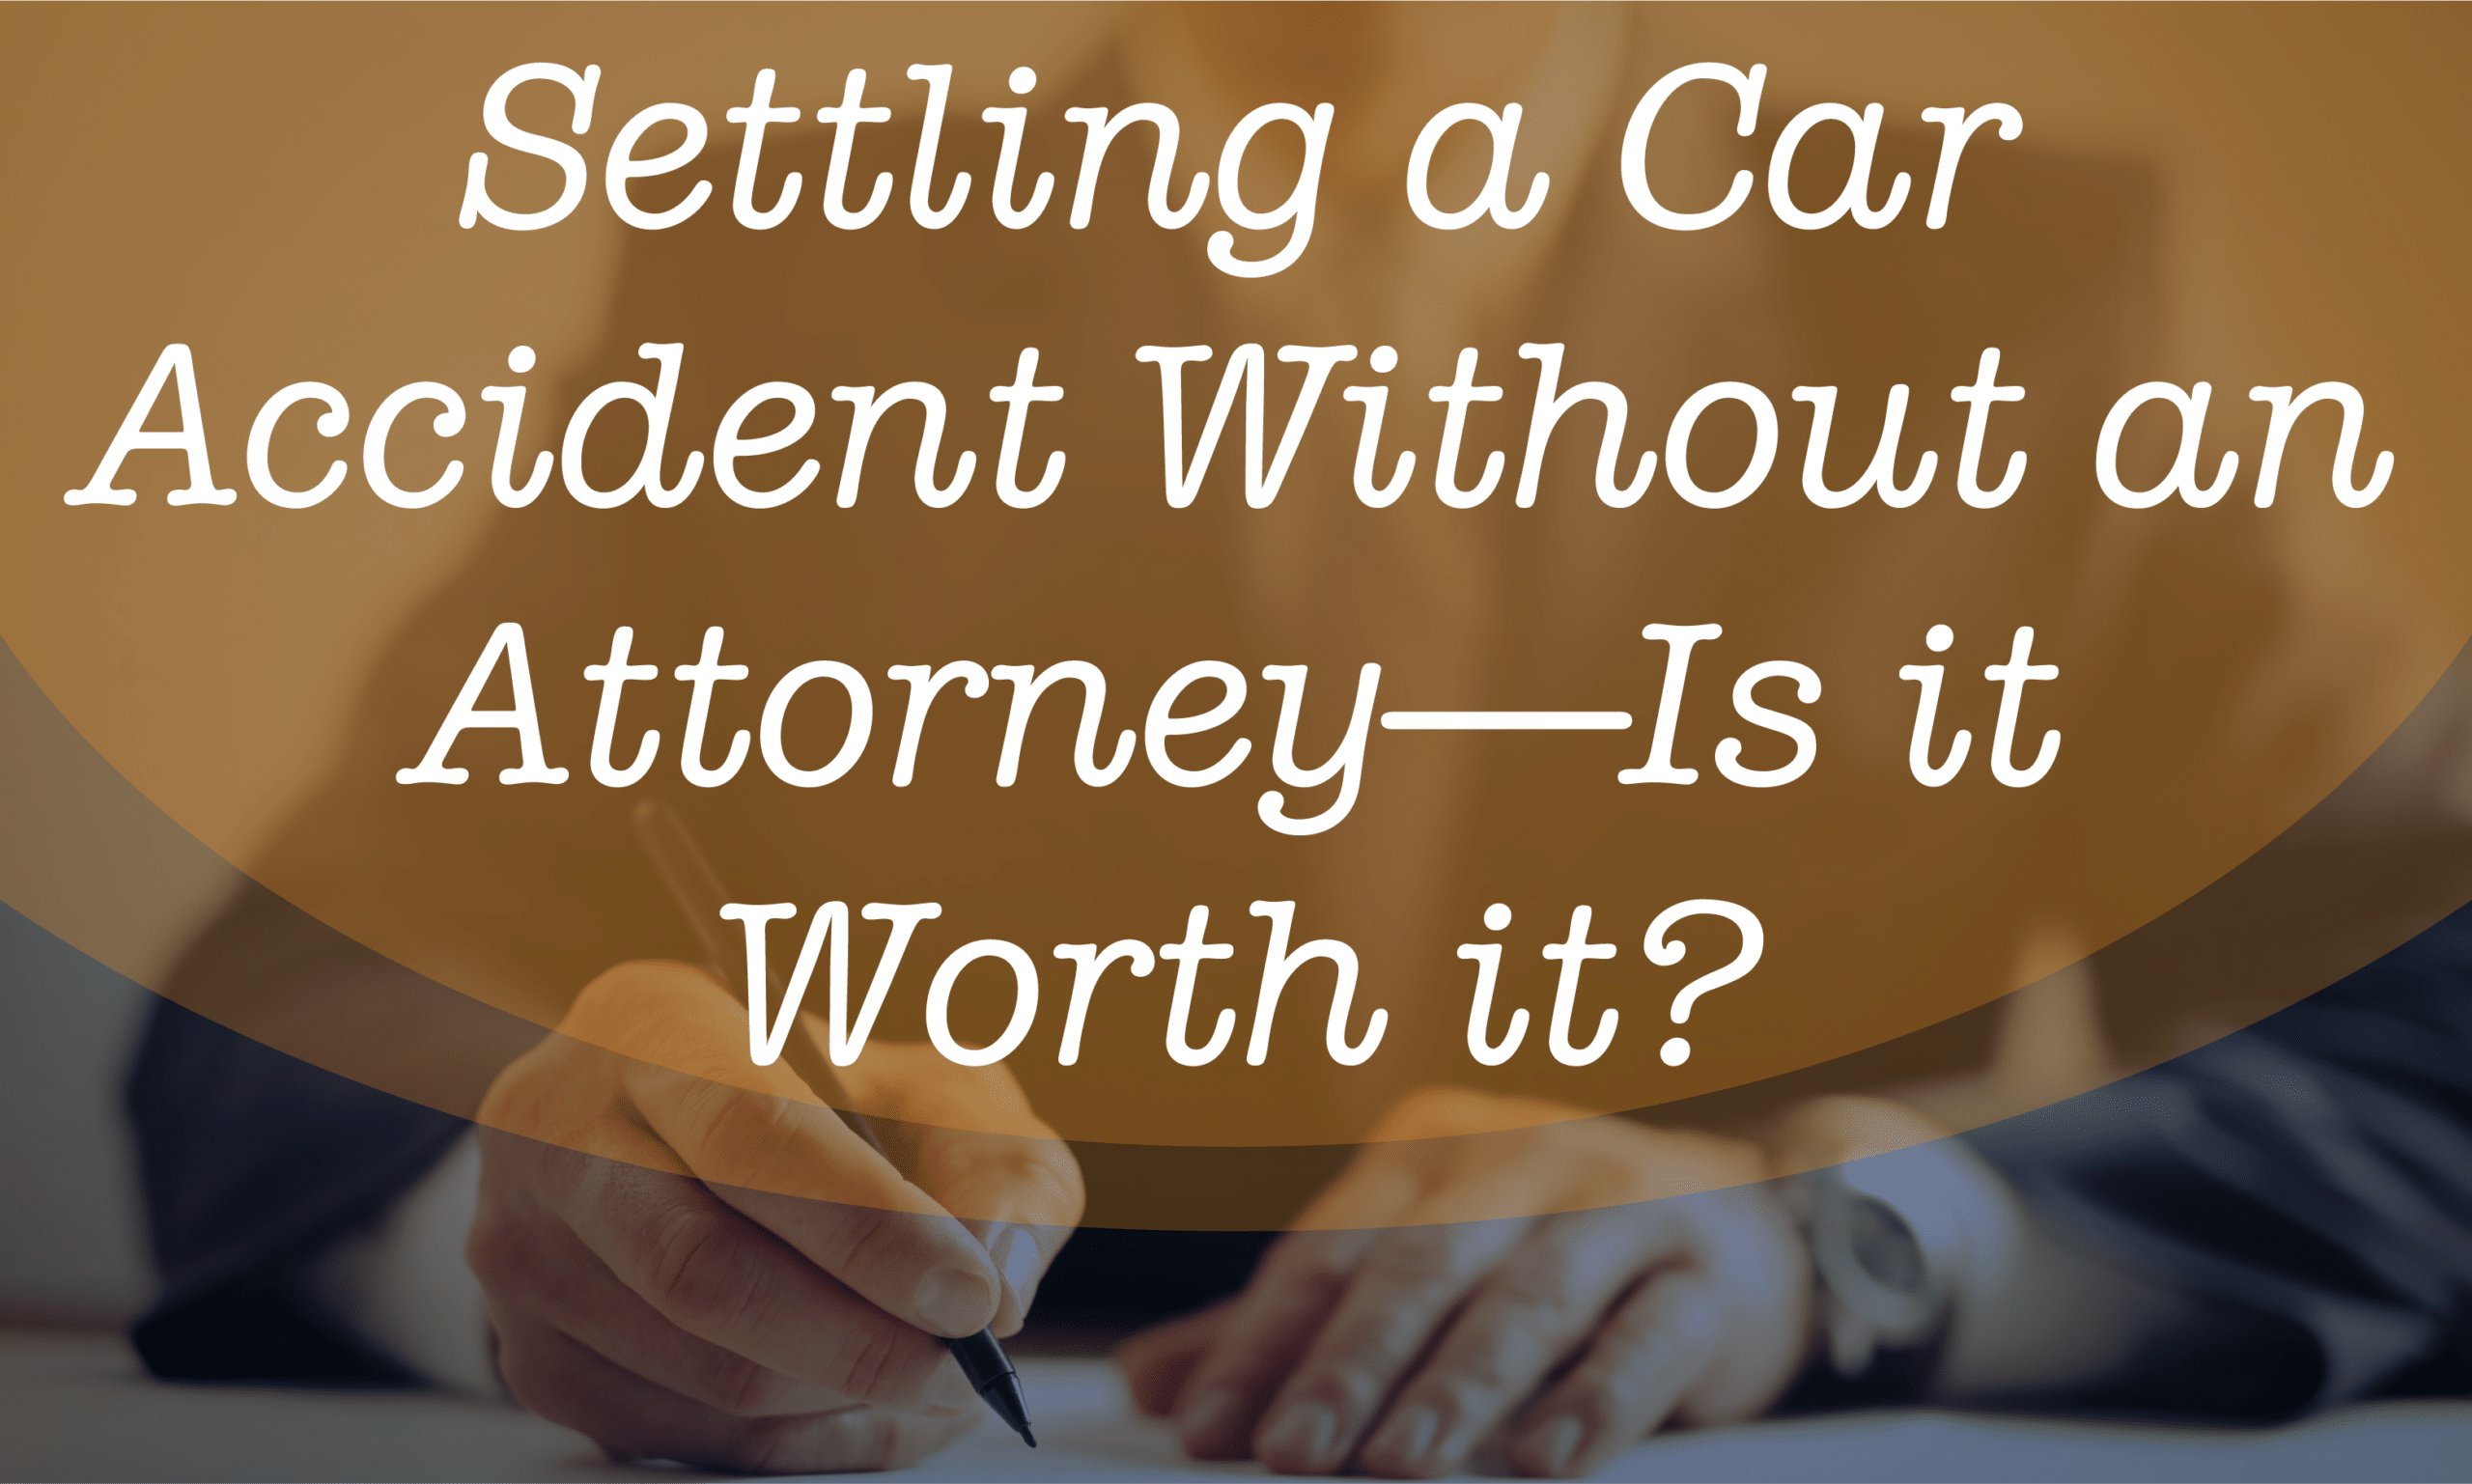 Settling a Car Accident Without an Attorney—Is it Worth it?